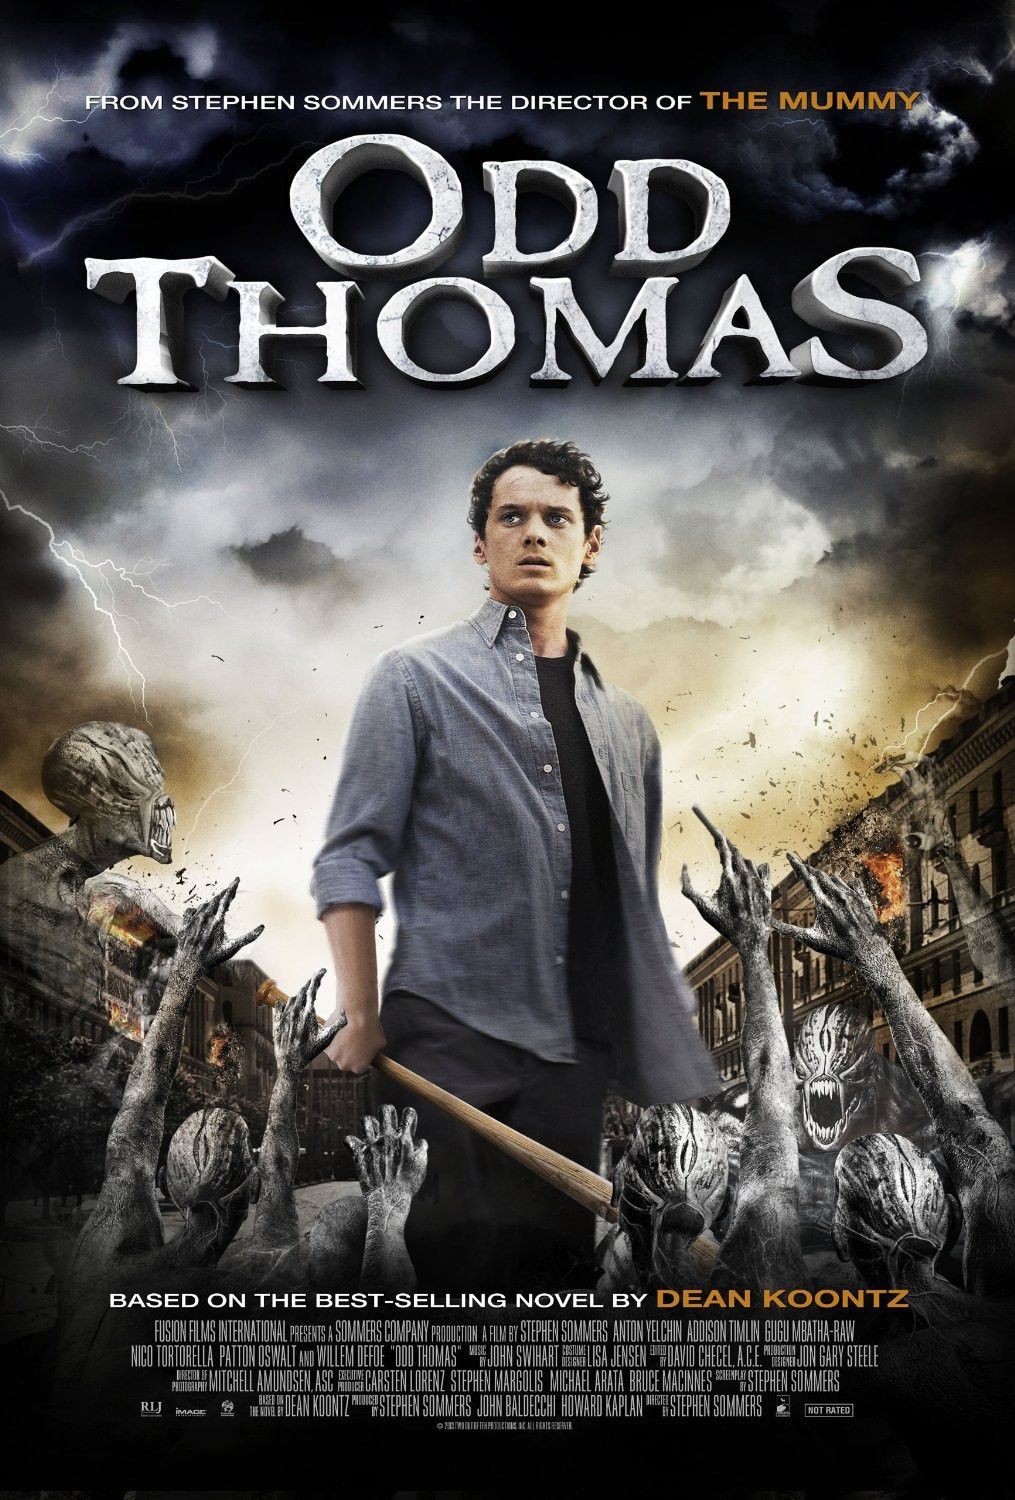 Odd Thomas - paranormal film poster